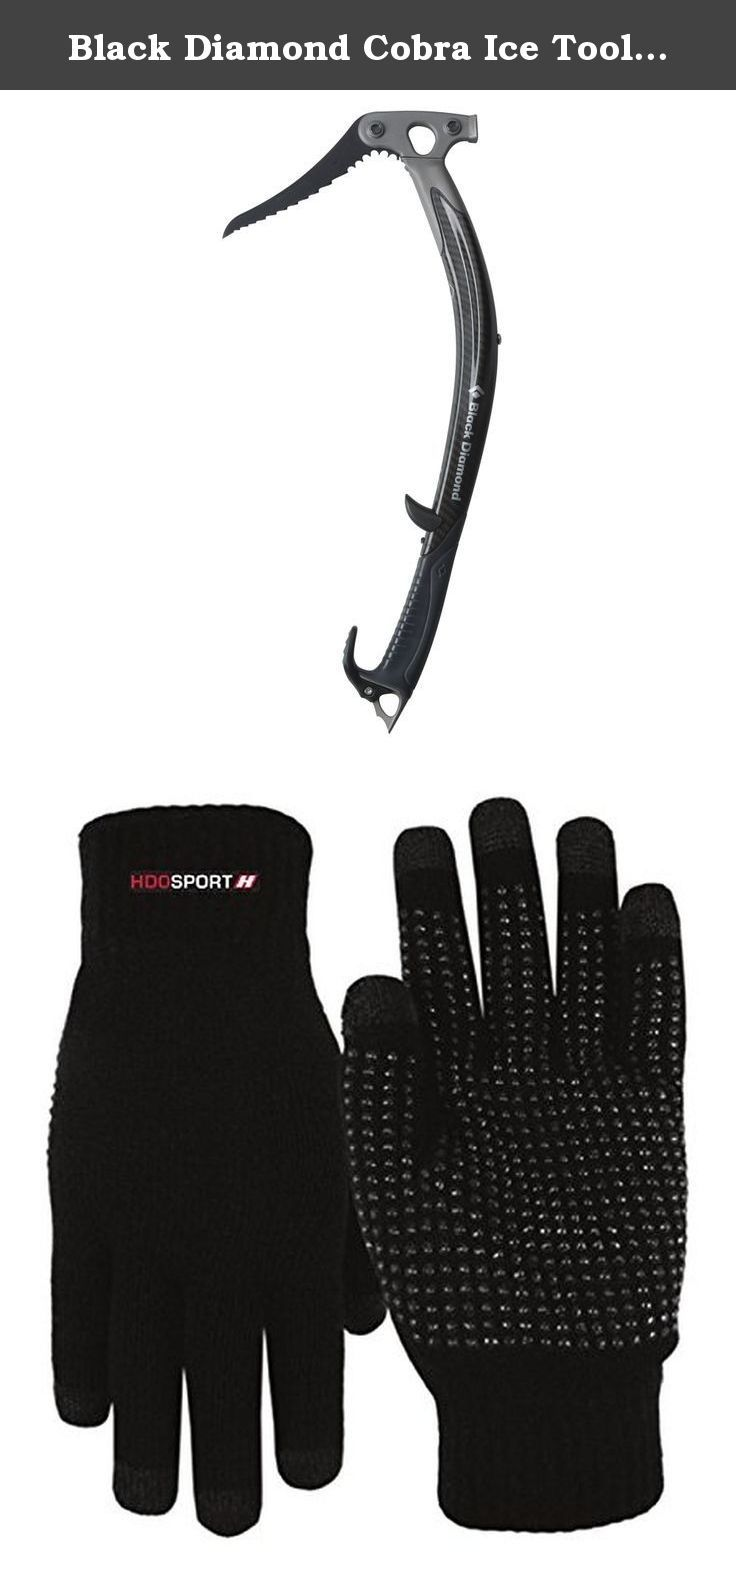 Black Diamond Cobra Ice Tool Carbon Fiber Hammer and HDO Lite E-tip Gloves with Grippers. Black Diamond Cobra Ice Tool Carbon Fiber Hammer.